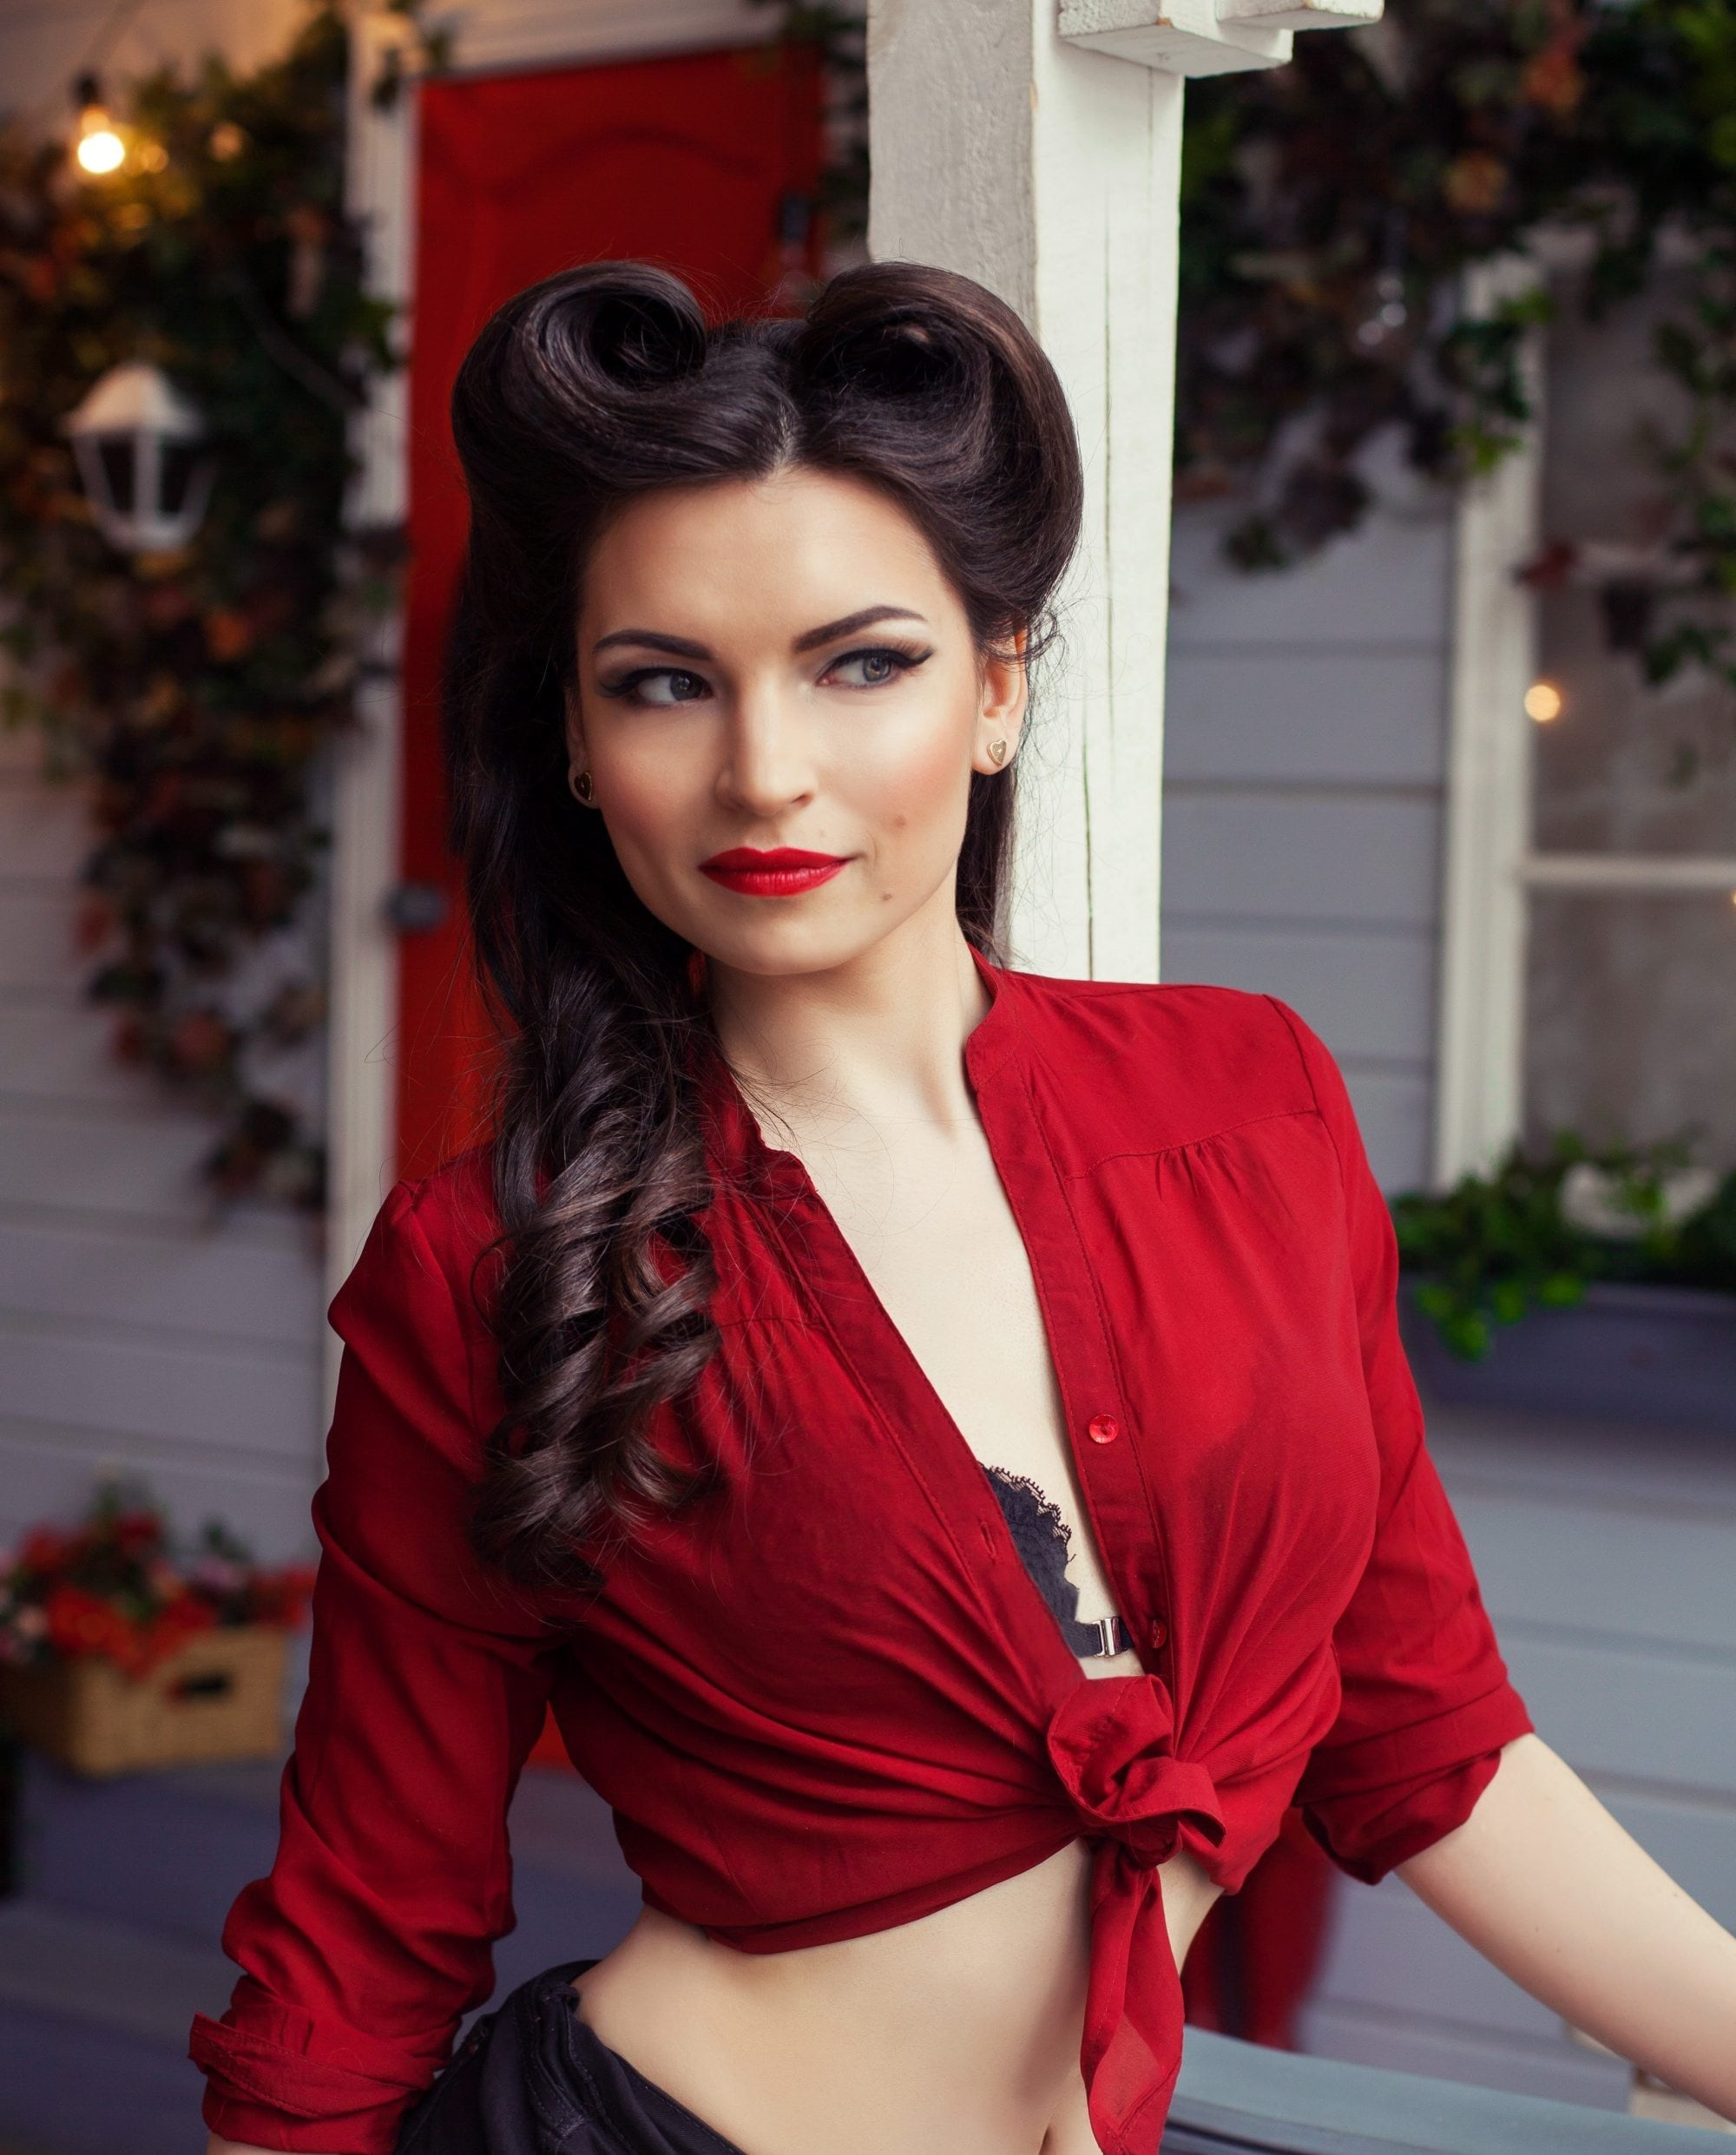 Rockabilly hair: Woman with long hair in a twisted long rockabilly hairdo wearing a red cropped top